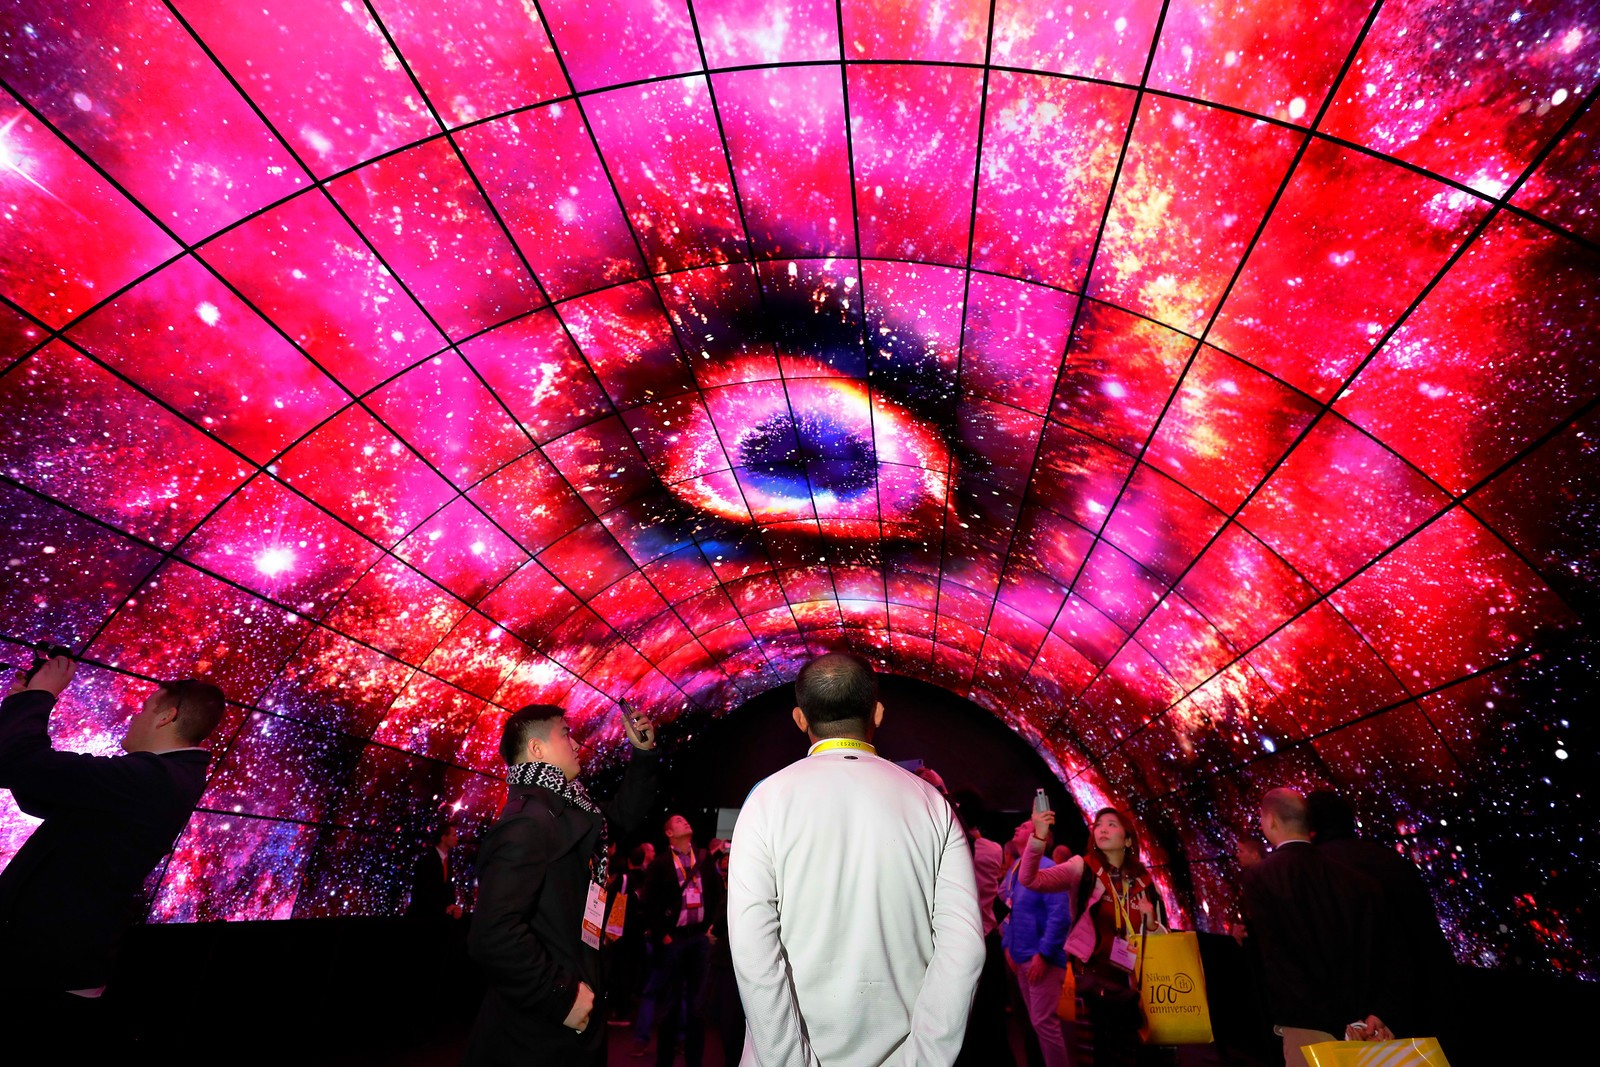 Visitors look up at the OLED screens of the LG OLED Tunnel at LG's CES 2017 booth